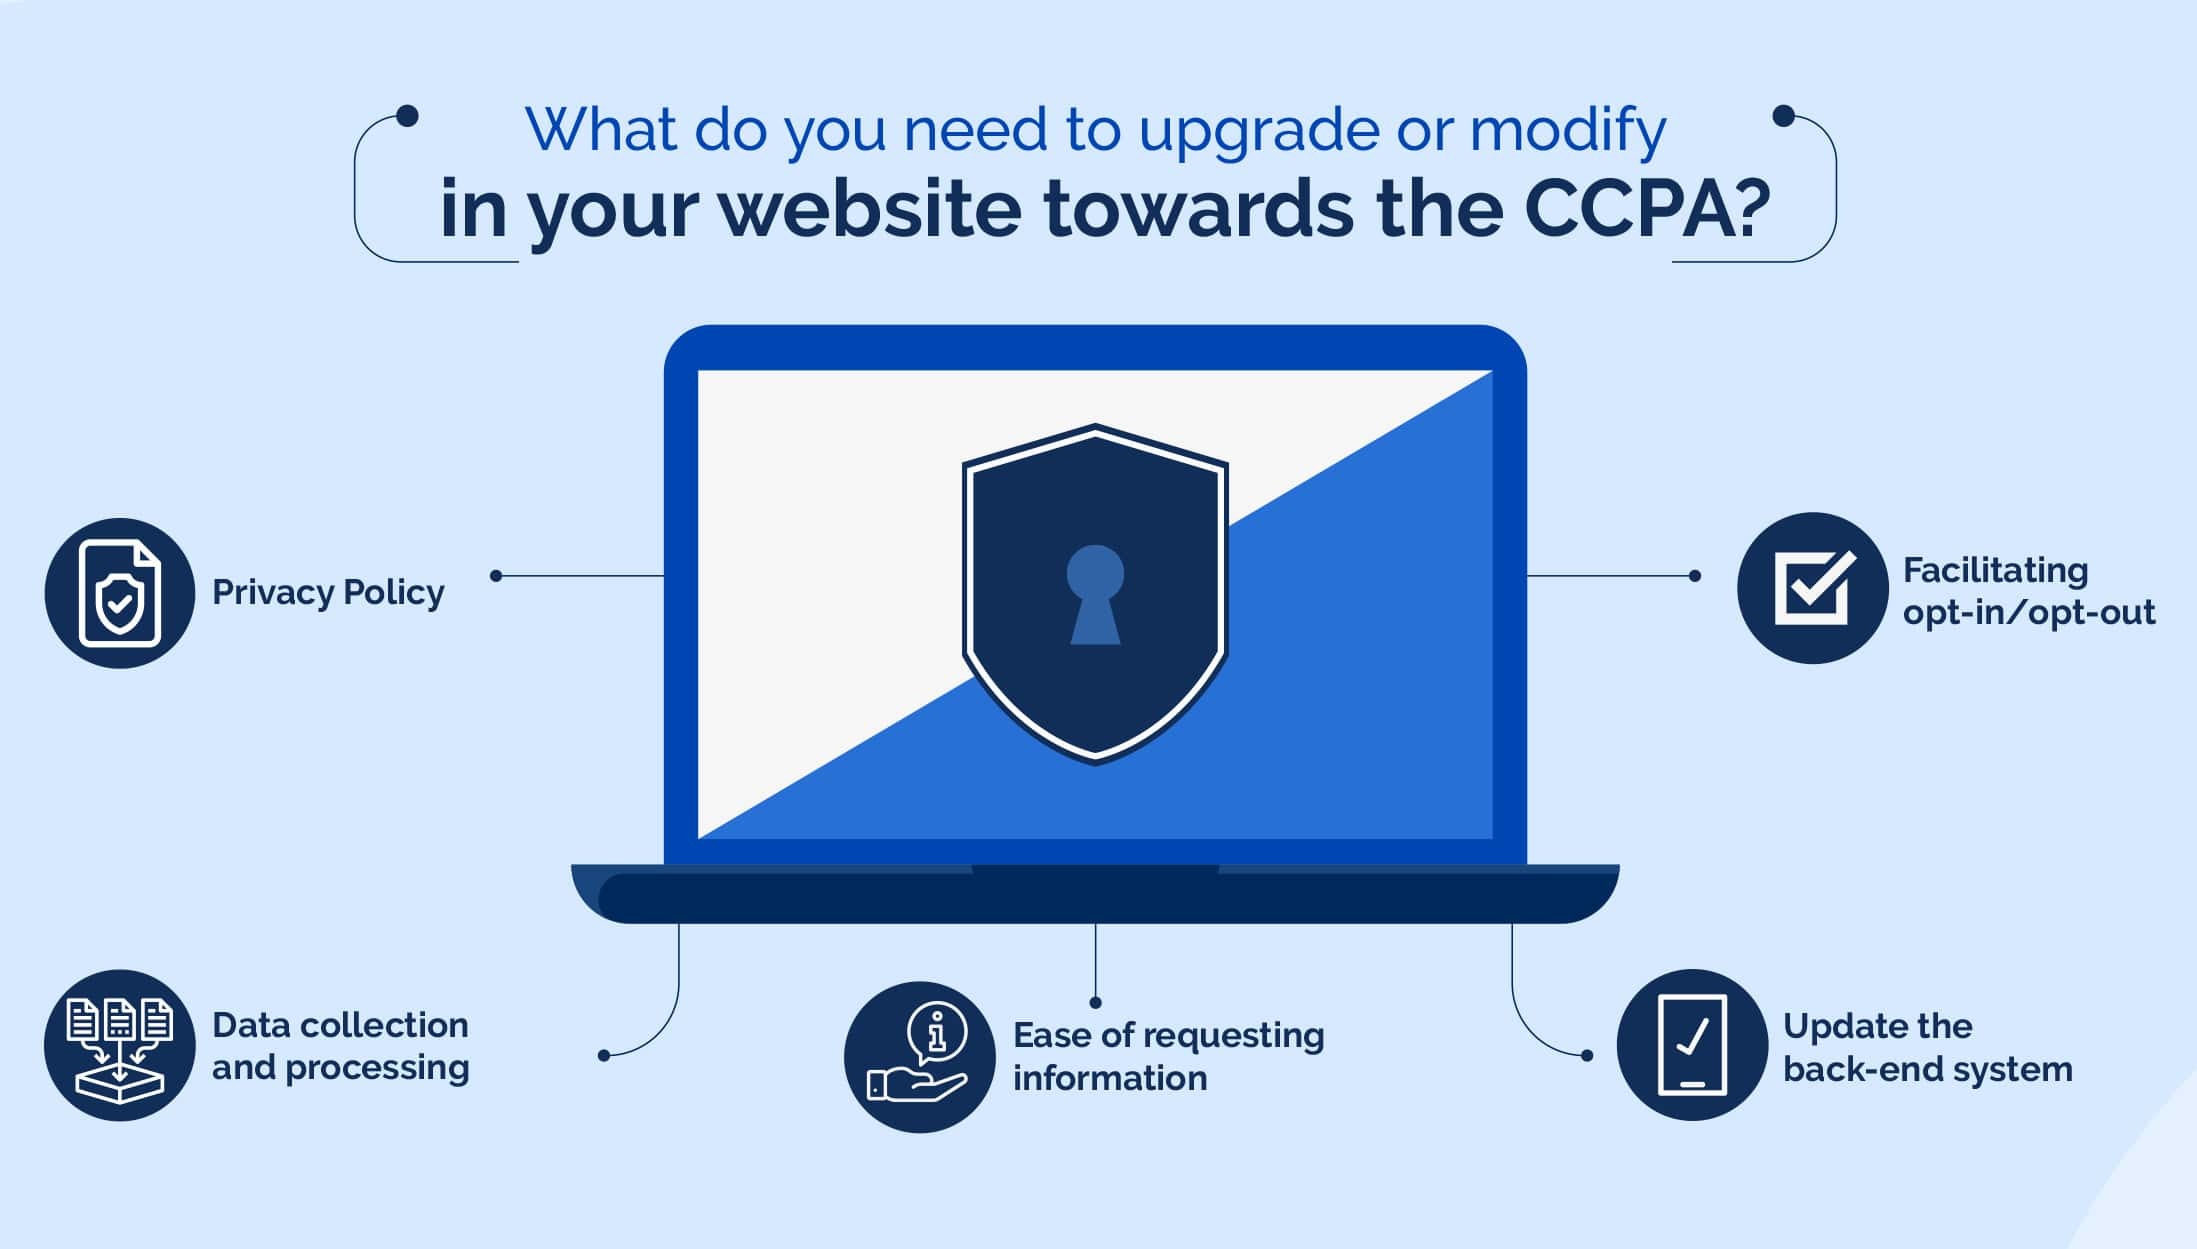 What do you need to upgrade or modify in your website towards the CCPA